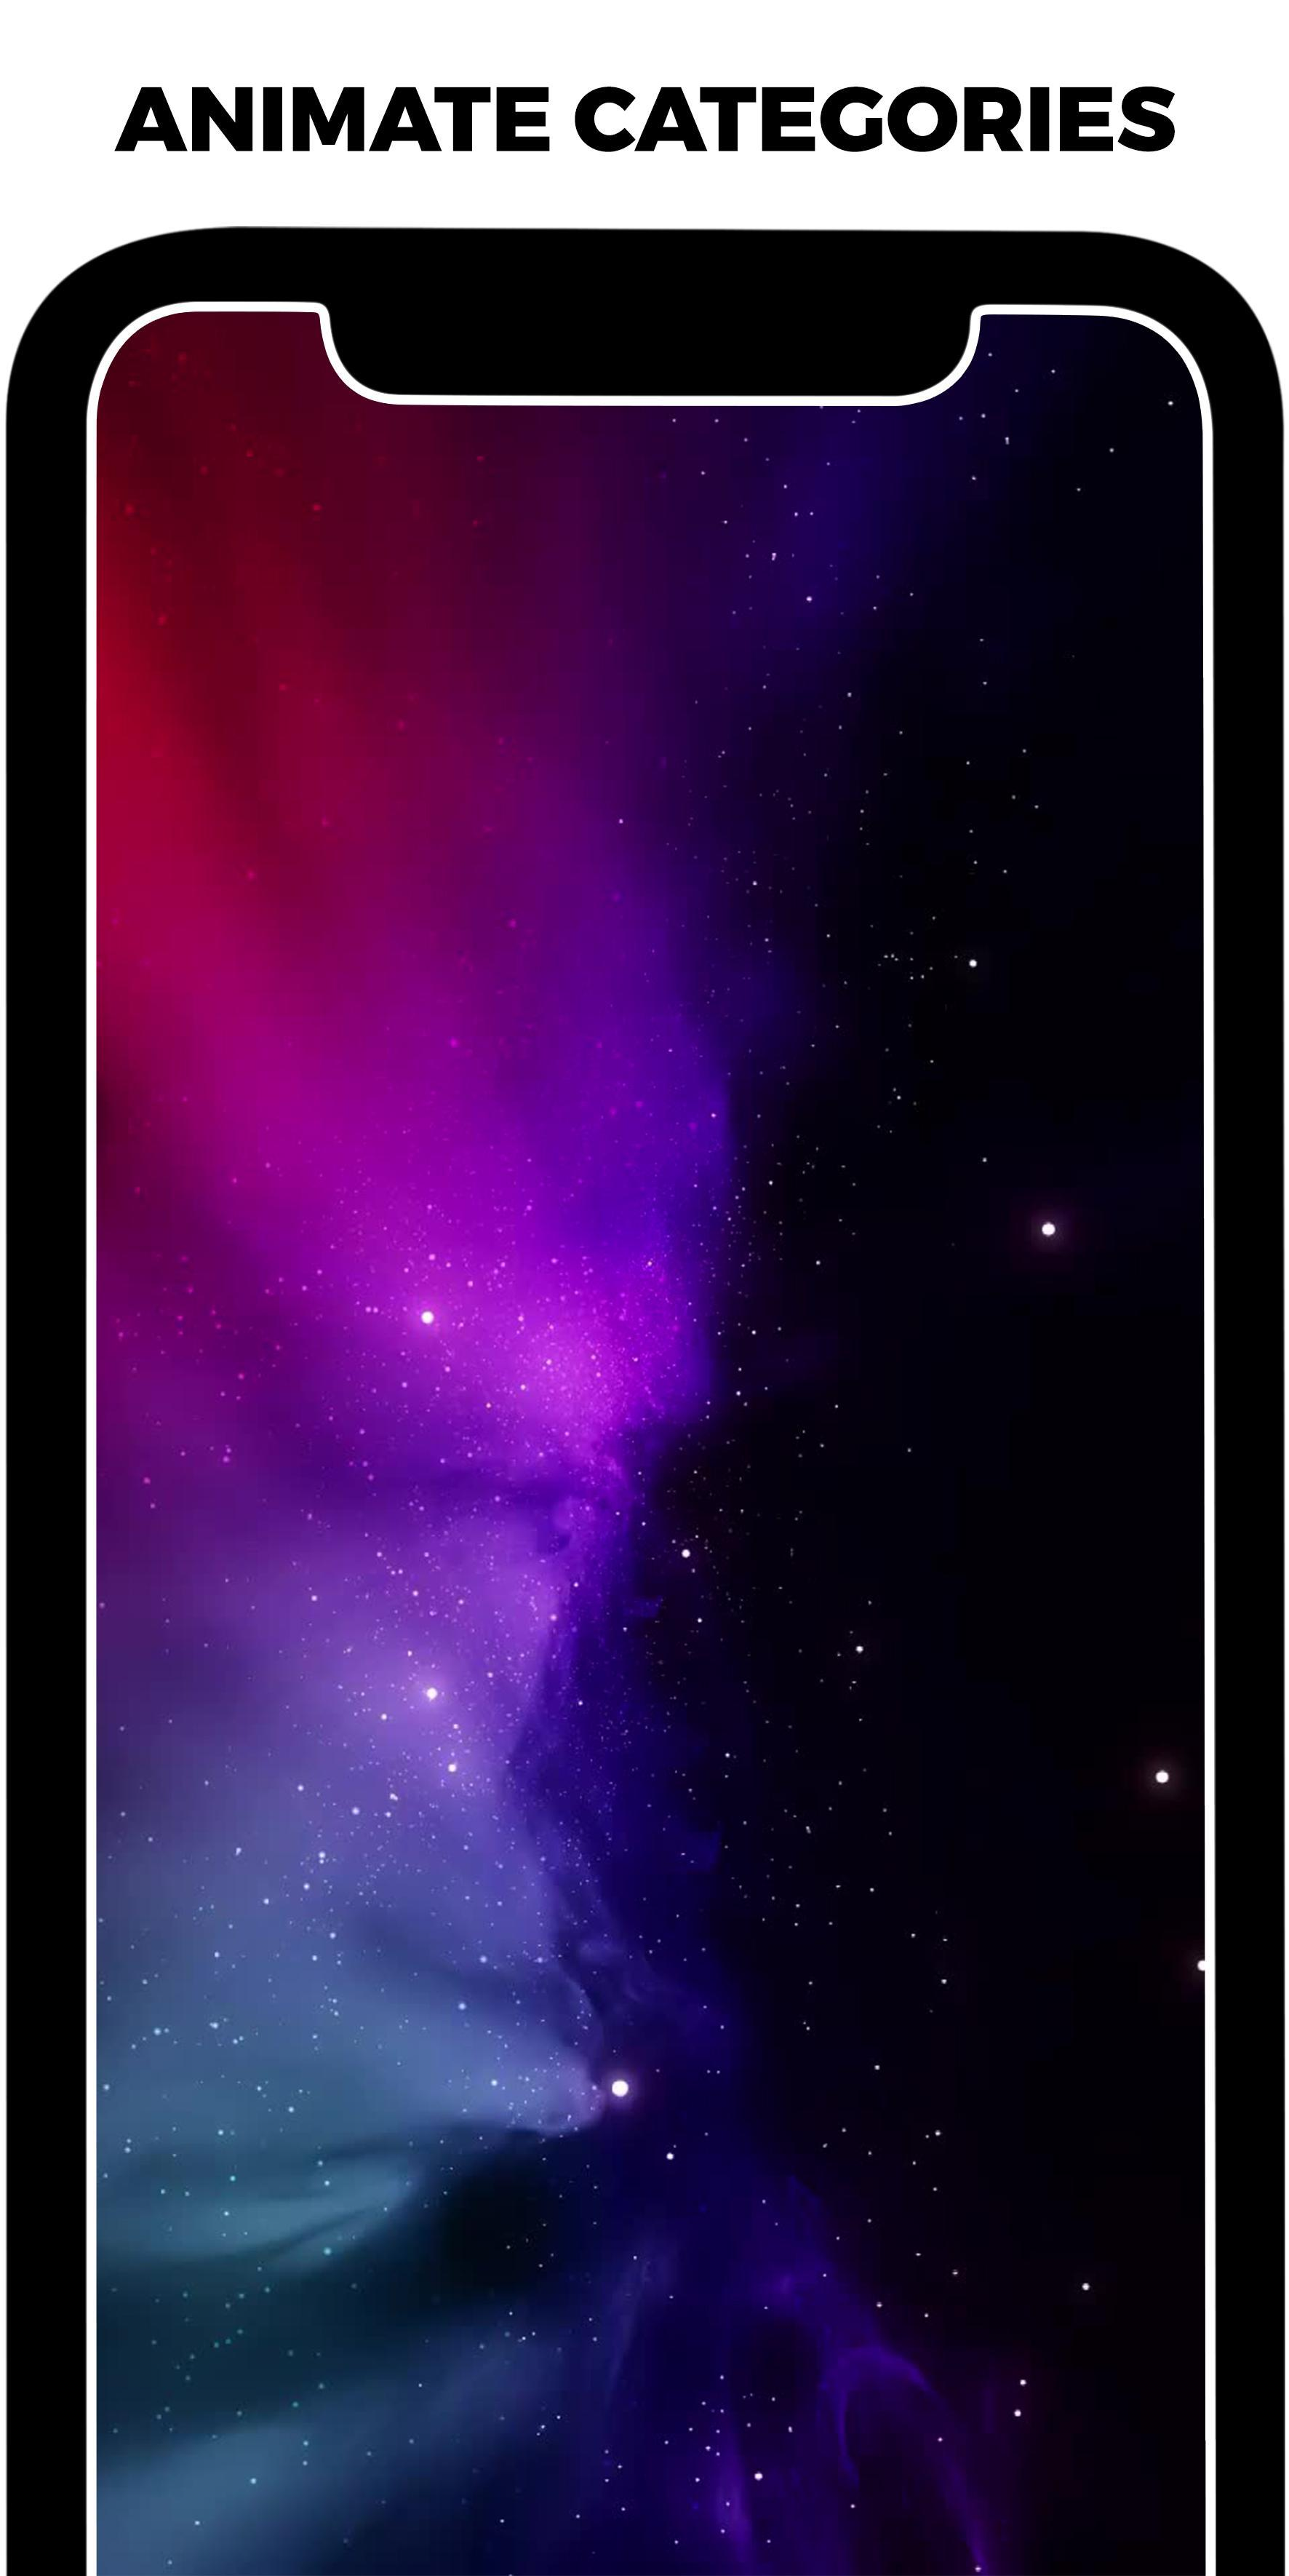 Live Wallpapers Hd Backgrounds 4k 3d Walloop For Android Apk Download